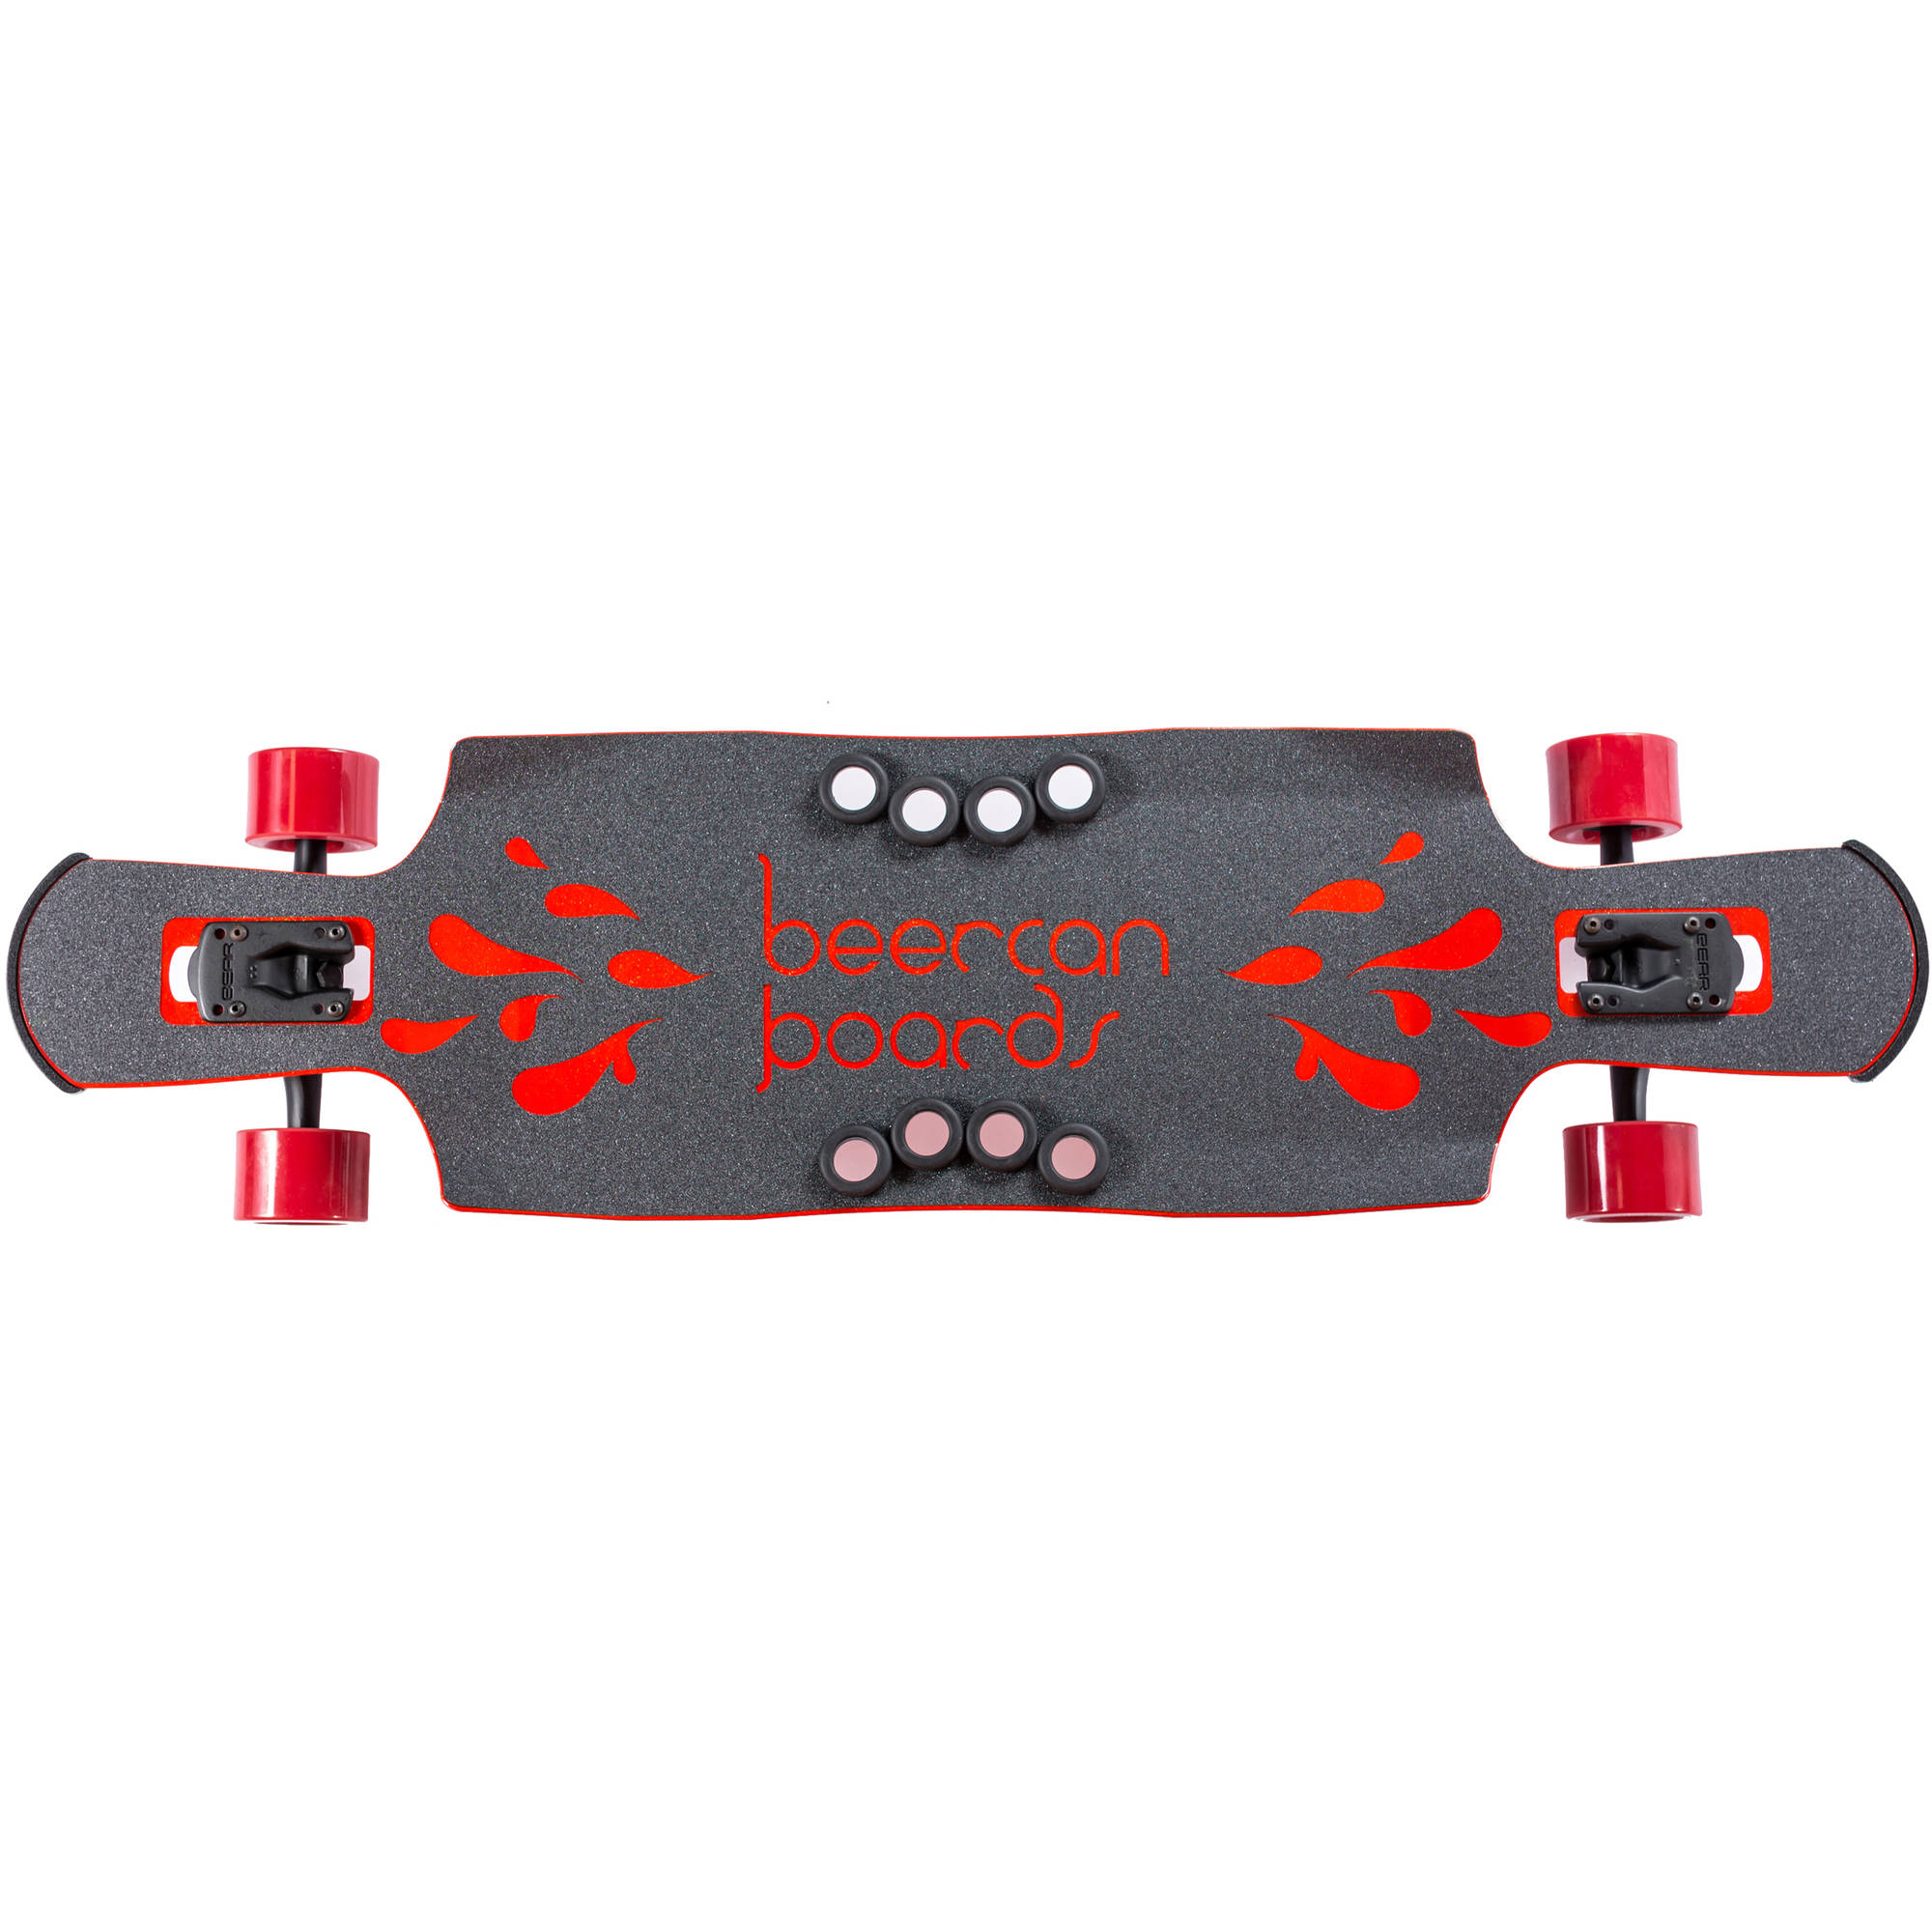 """40"""" Red Kegger Complete Longboard, Double Drop with Pedals by Beercan Boards"""